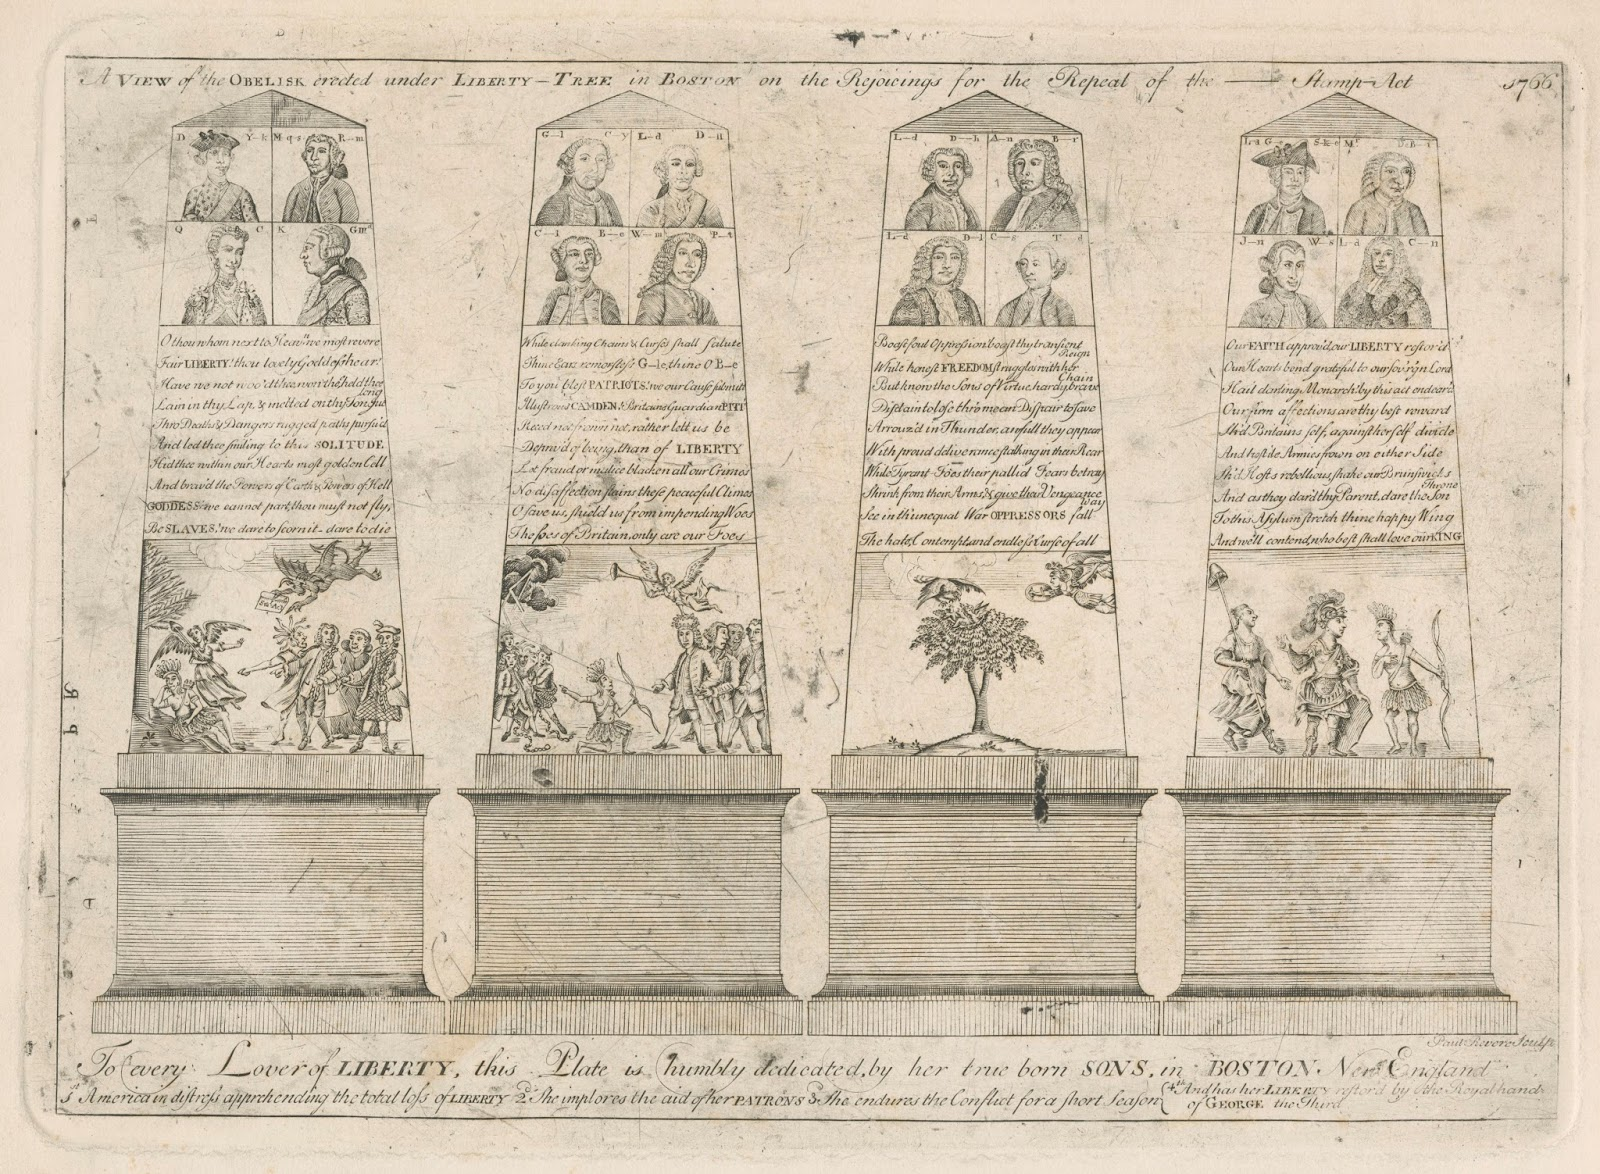 clements library chronicles  a view of the obelisk erected under the liberty tree in boston on the rejoicings for the repeal of the stamp act boston s n